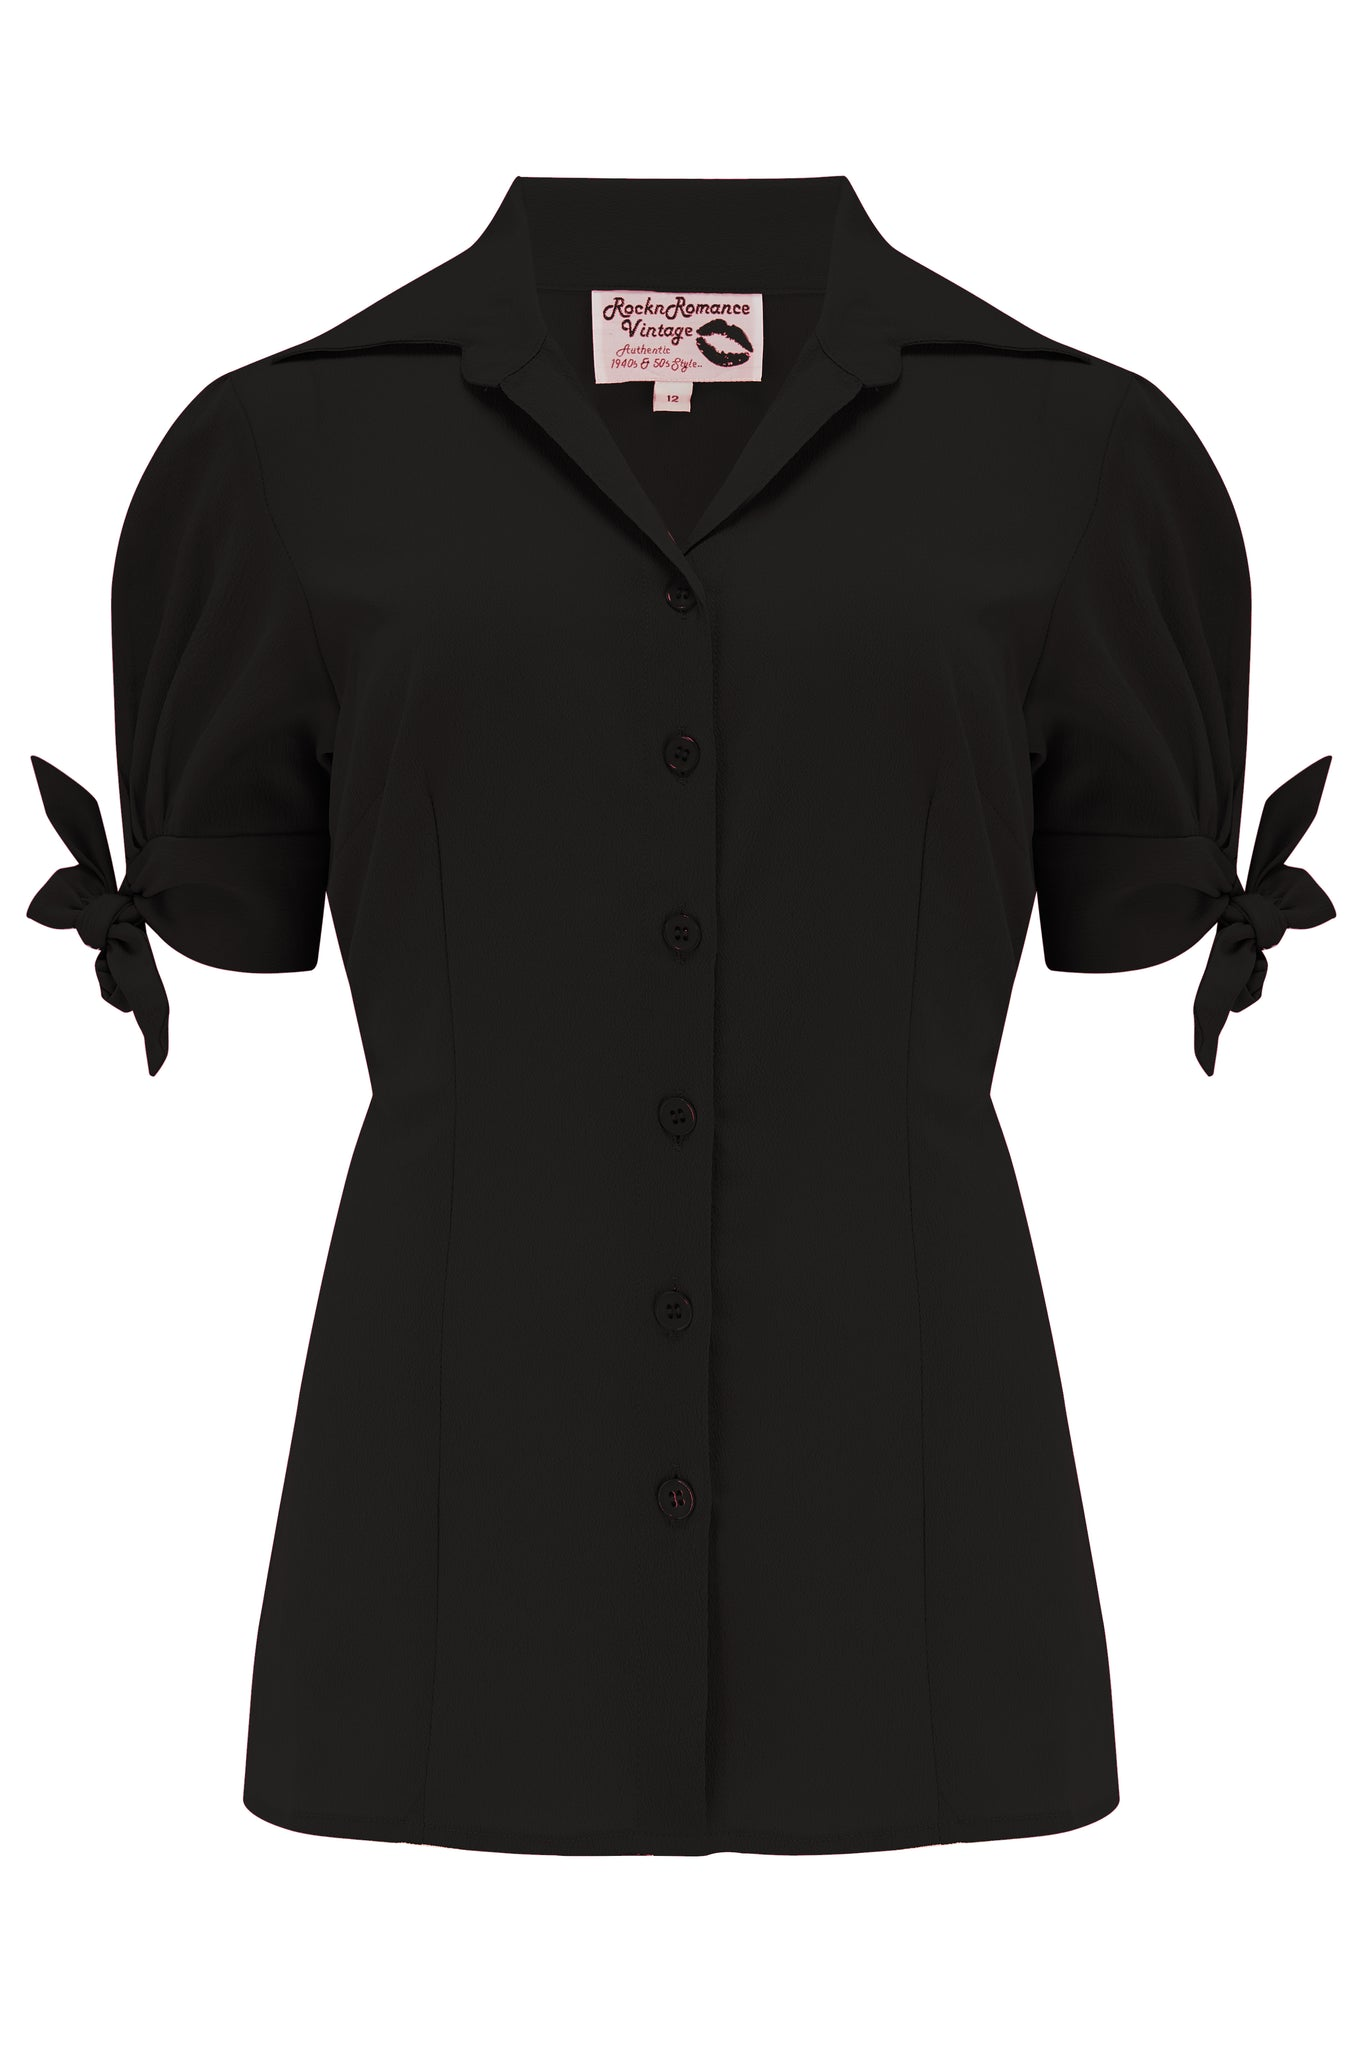 "Pre-Order.. The ""Jane"" Blouse in Solid Black, True & Authentic 1950s Vintage Style - RocknRomance True 1940s & 1950s Vintage Style"